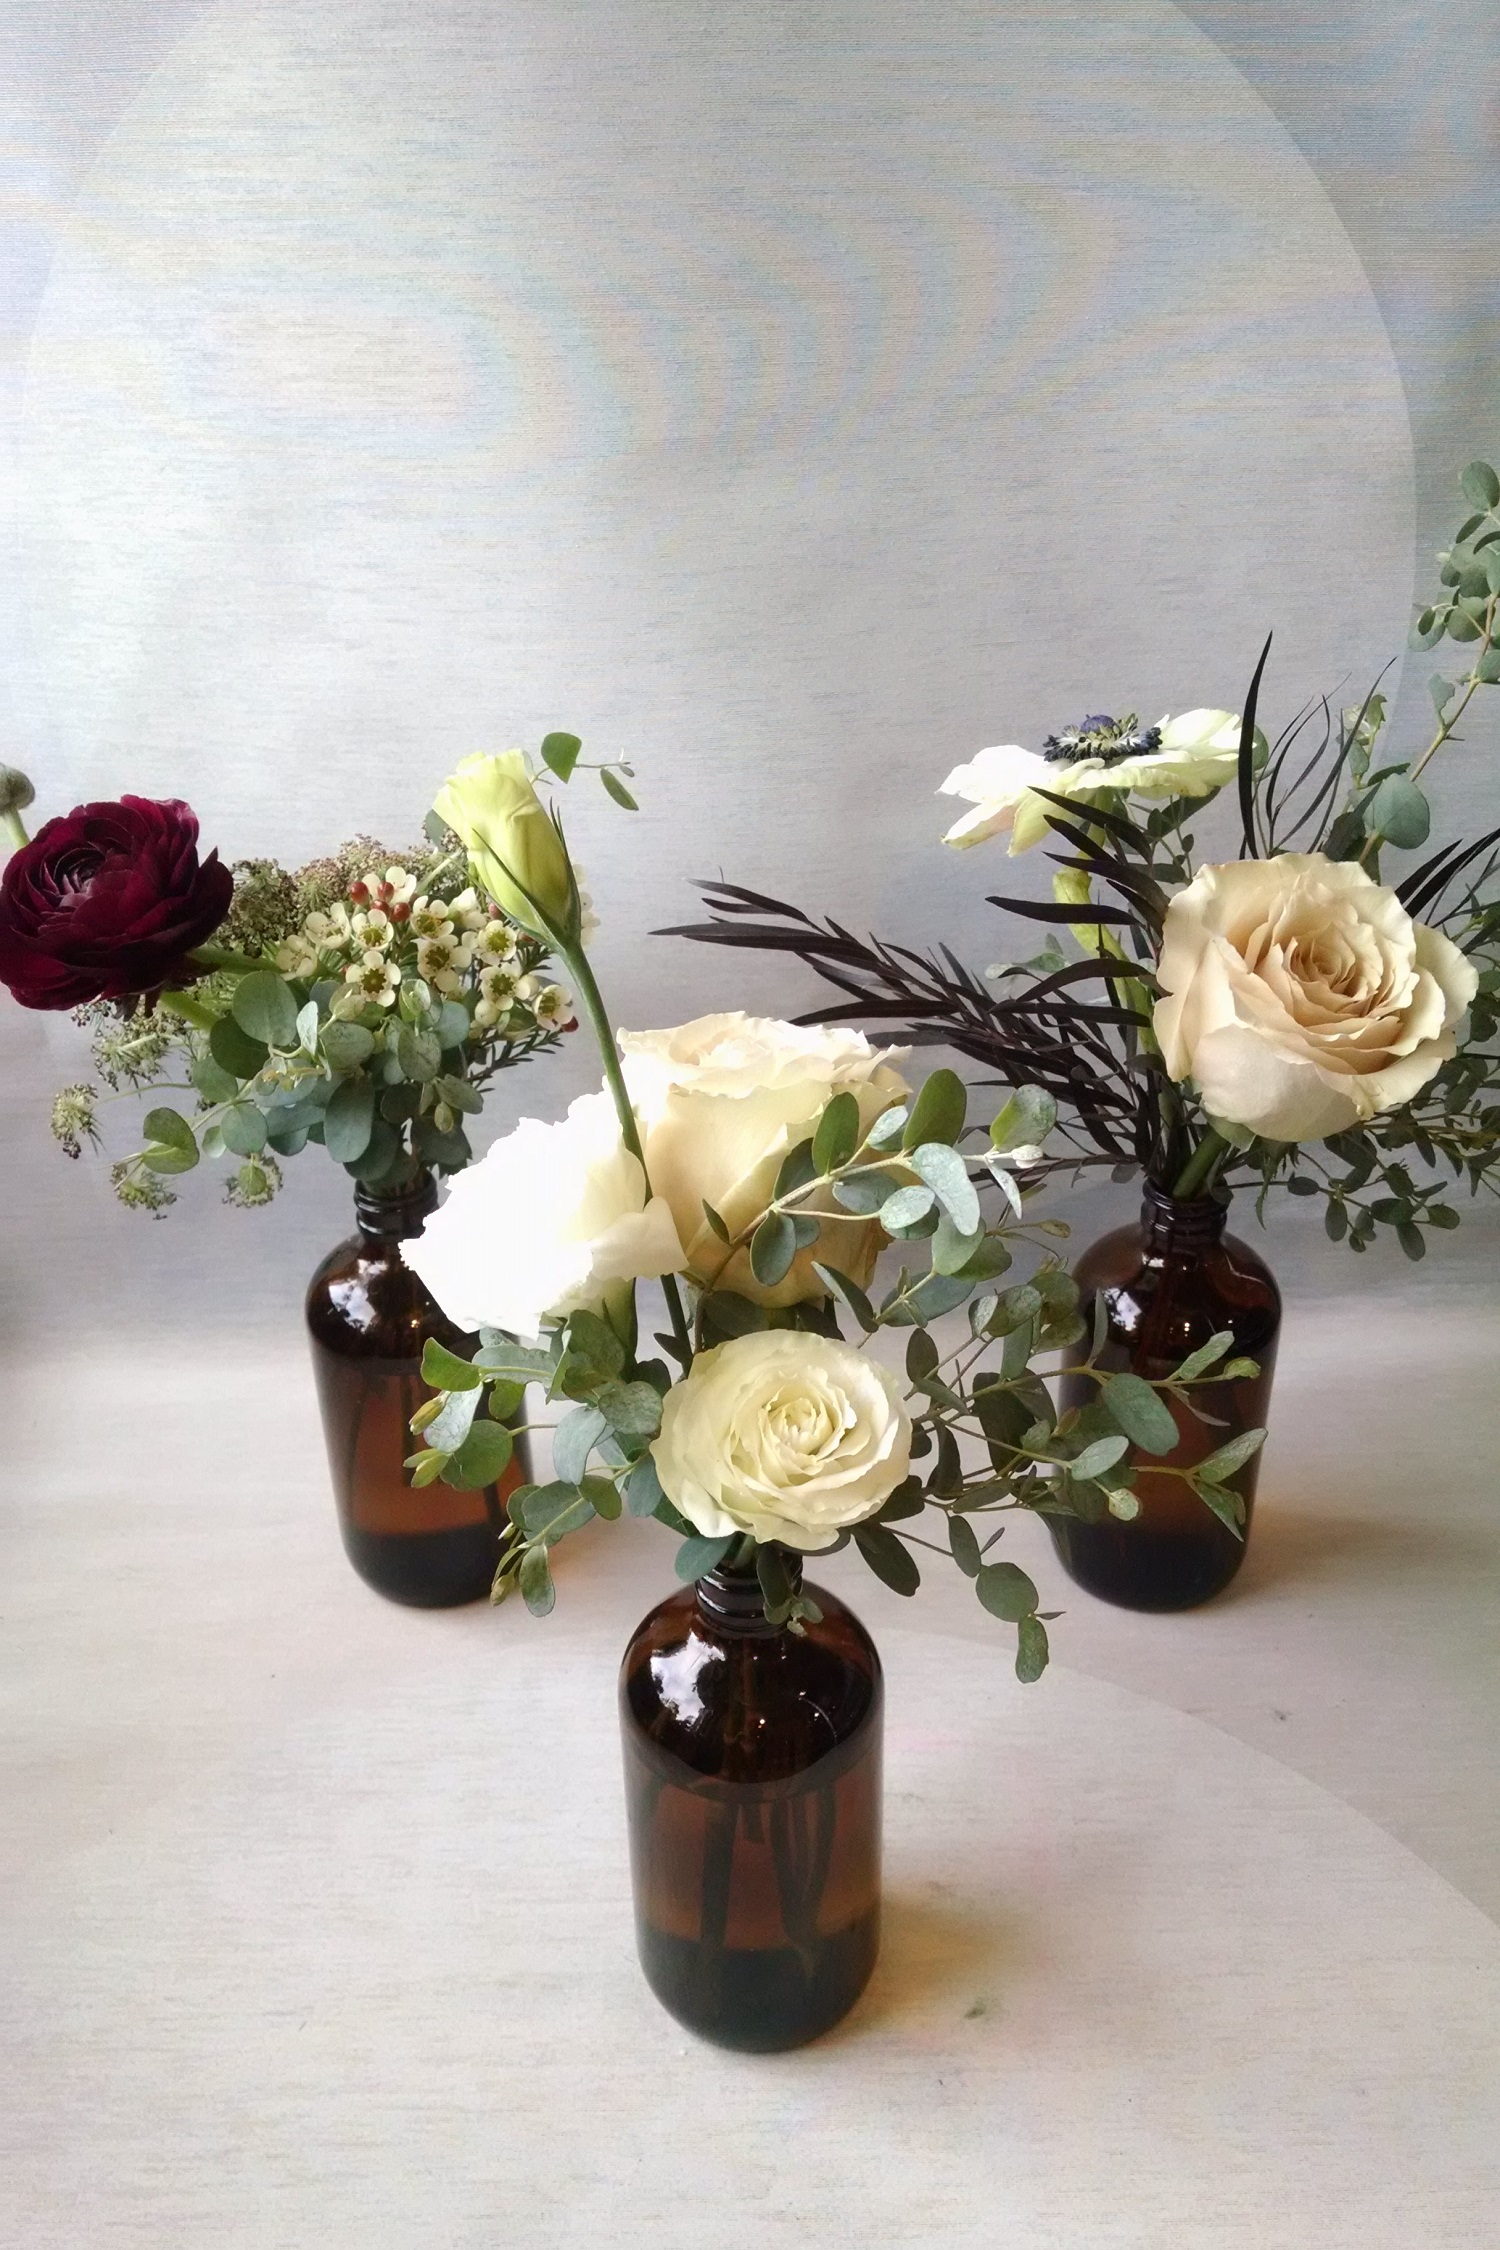 Minneapolis twin cities florist near me greenery